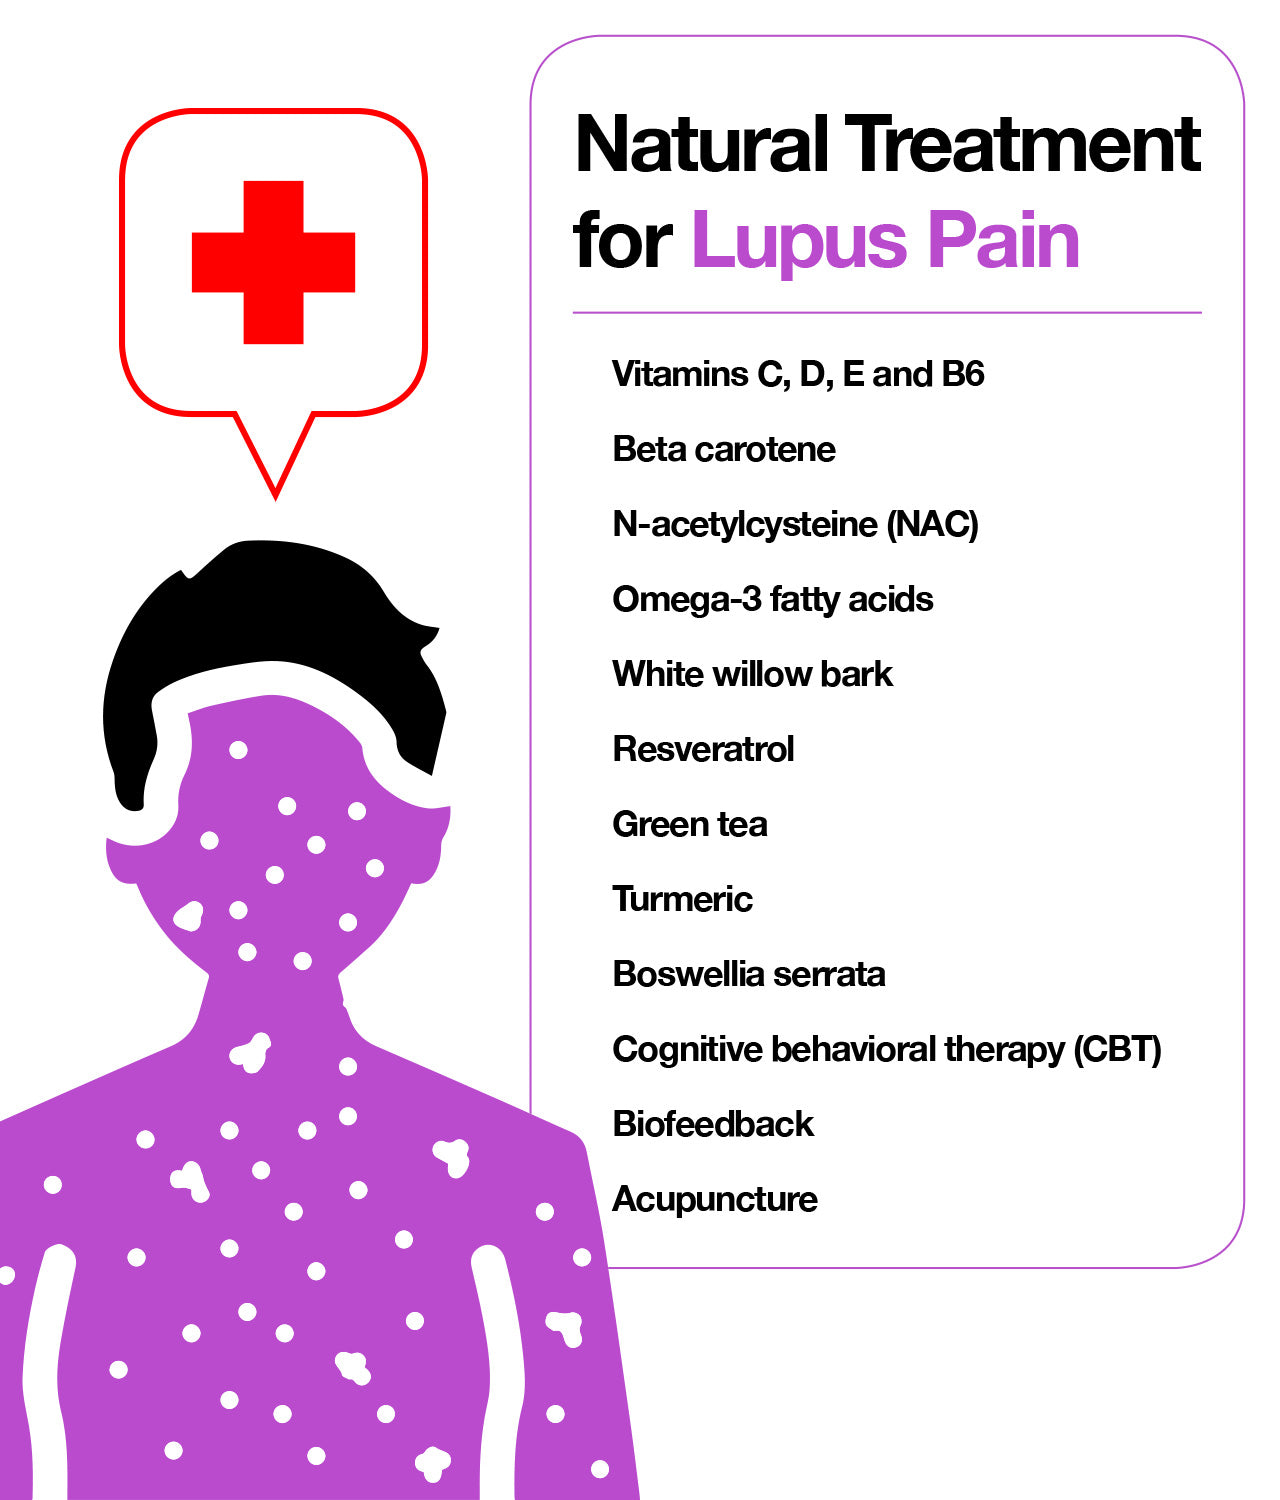 Natural treatment for lupus pain